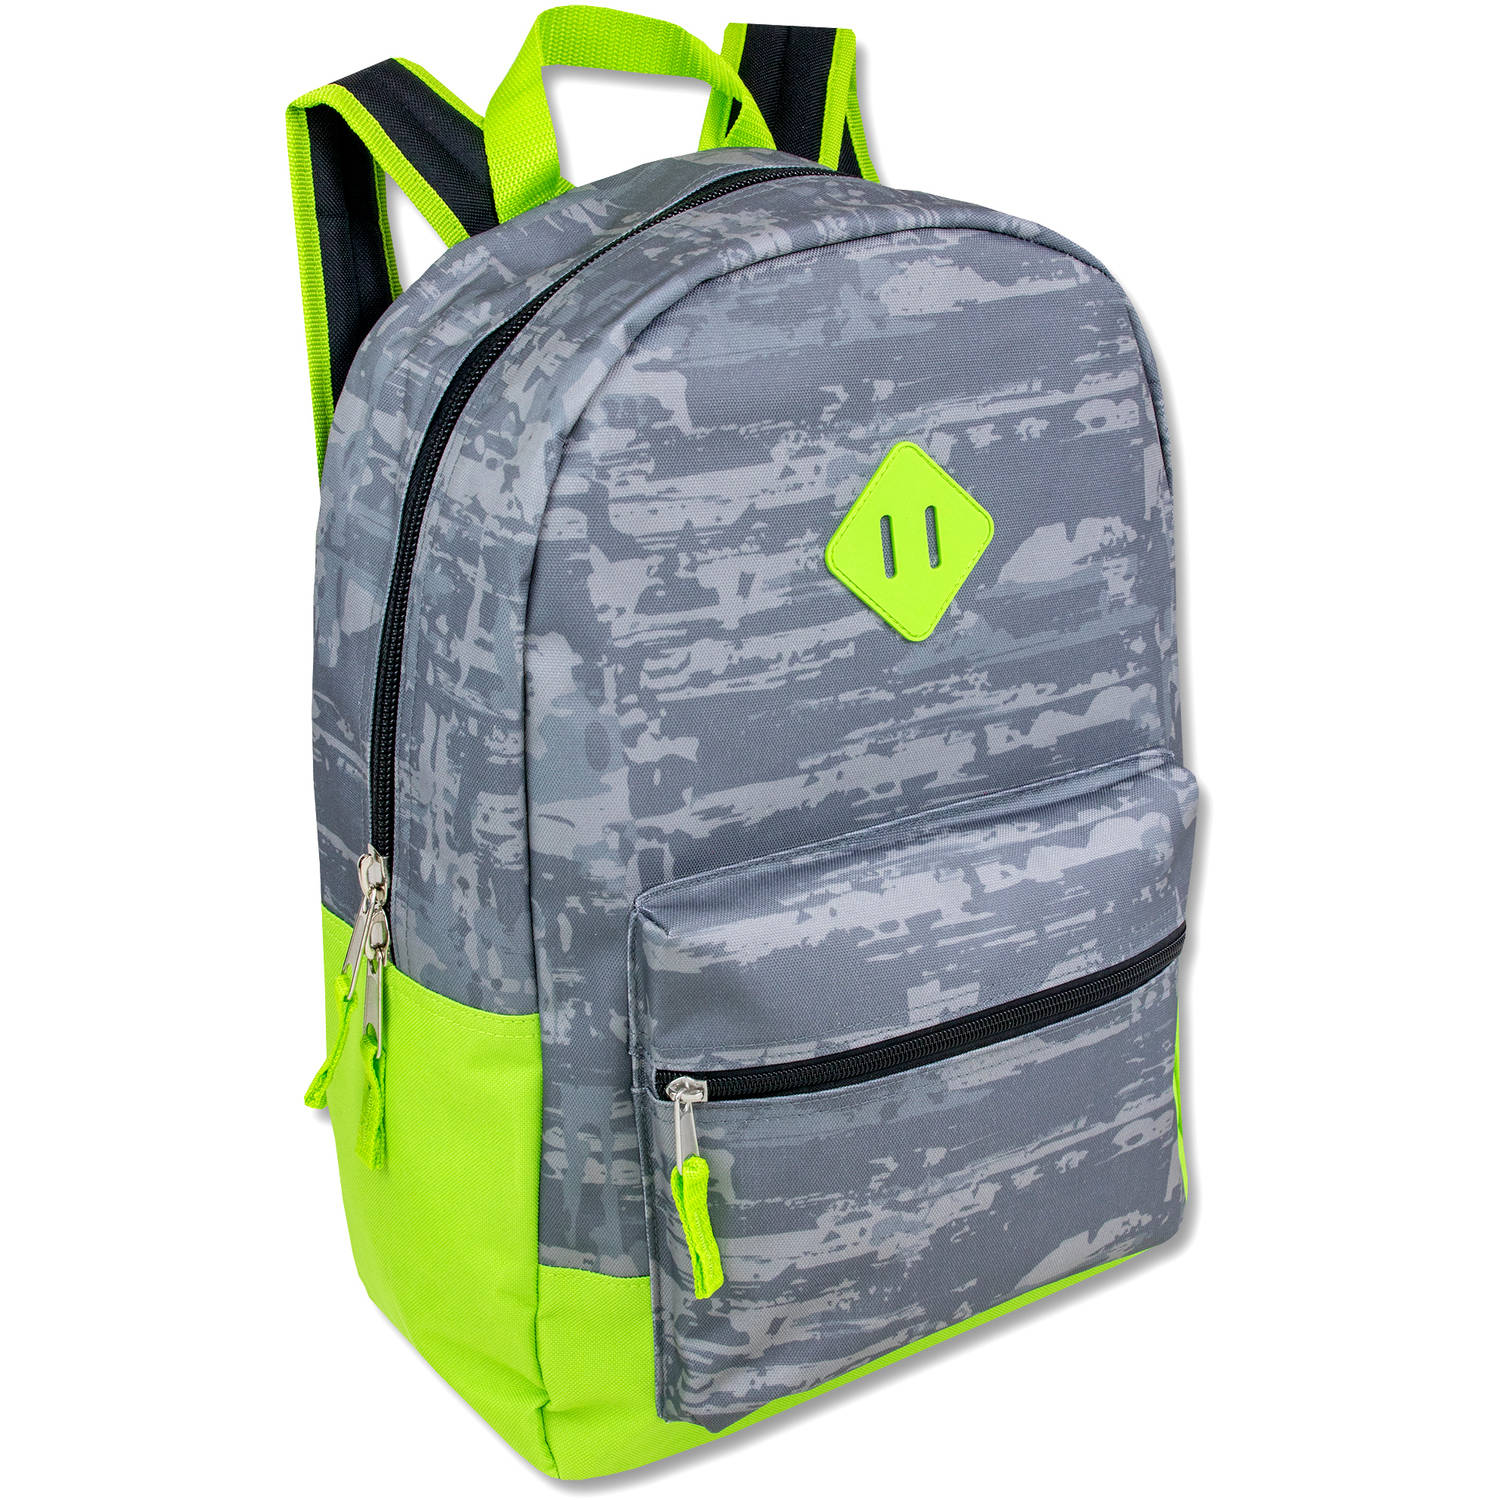 Walmart Boys Backpacks (found 37 products) Category: Backpacks (22) School Bags (9) Handbags (2) Shopping Bags (1) Mroe. Country:China United states India Hong kongMroe. 1/8. Various walmart backpacks style with.